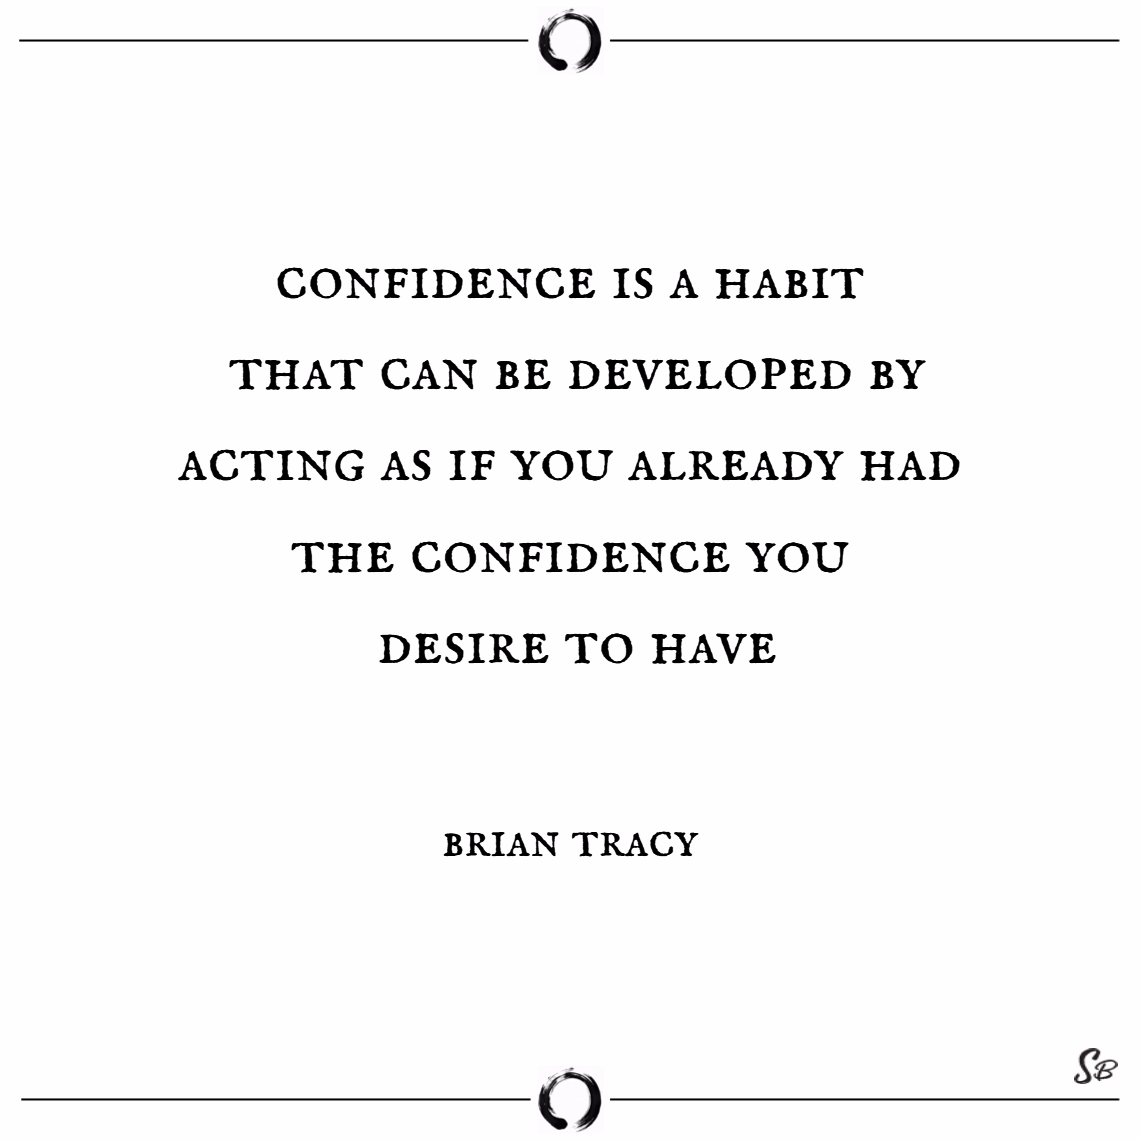 Confidence is a habit that can be developed by acting as if you already had the confidence you desire to have. – brian tracy